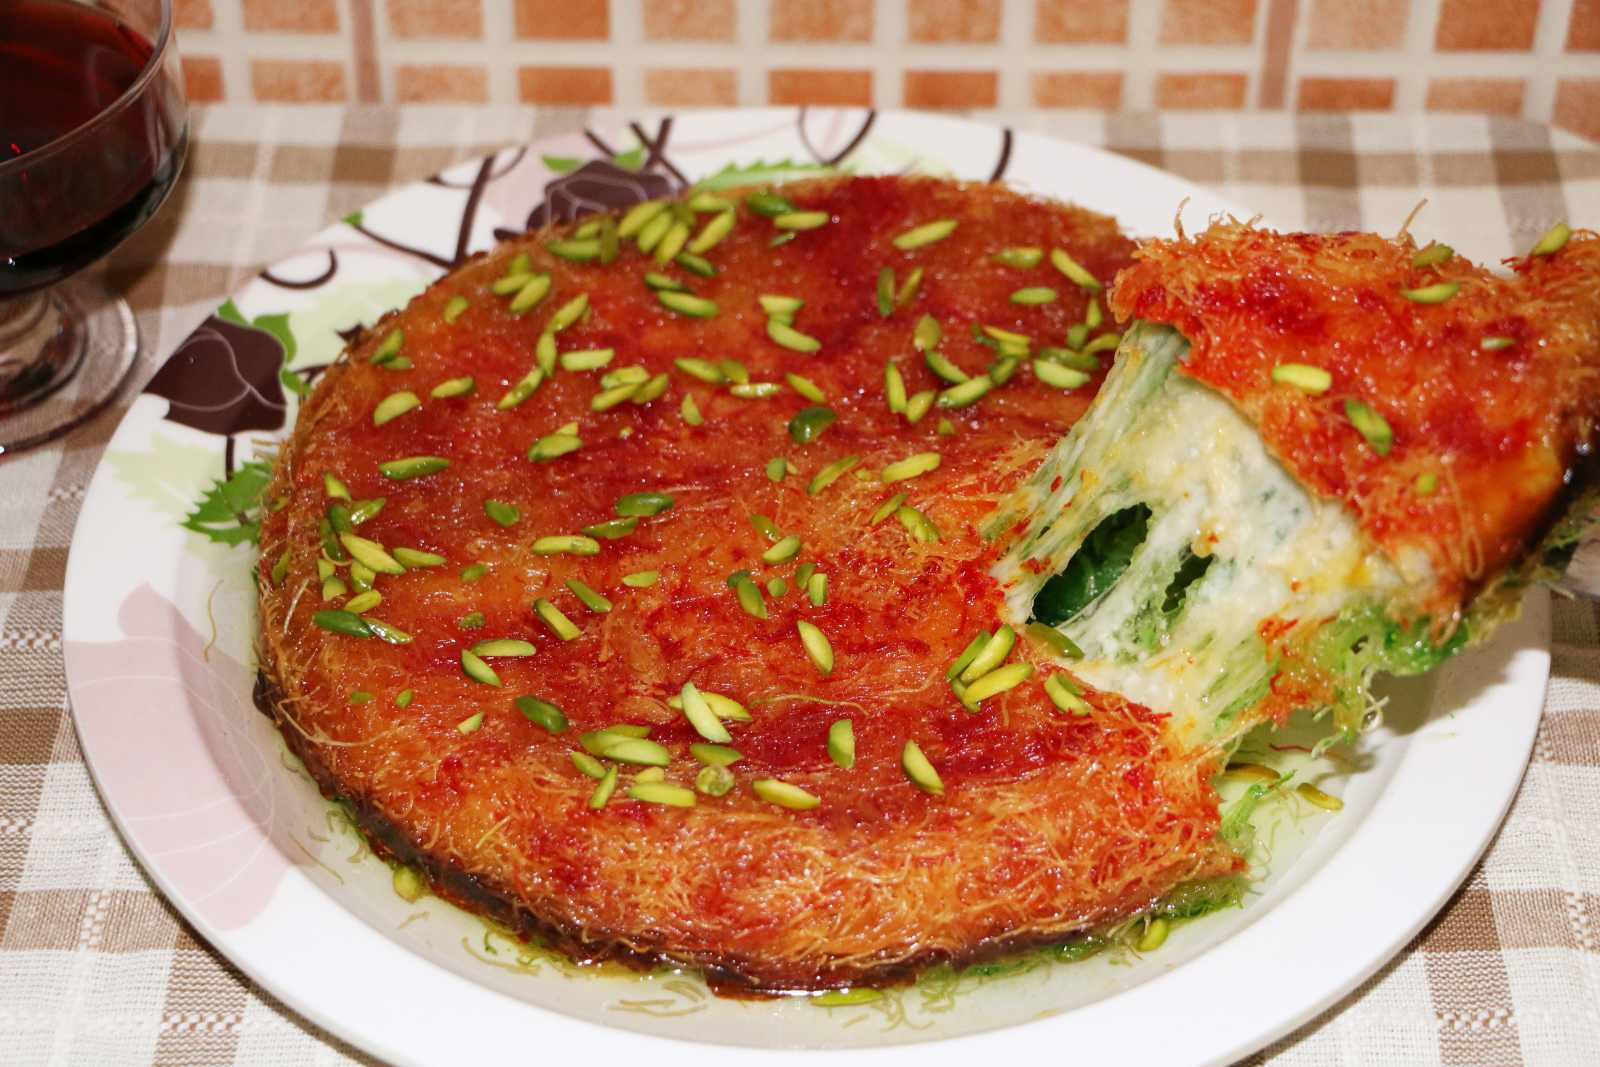 Delicious arabic sweet kunafa recipe knafeh by archanas kitchen delicious arabic sweet kunafa recipe knafeh forumfinder Choice Image